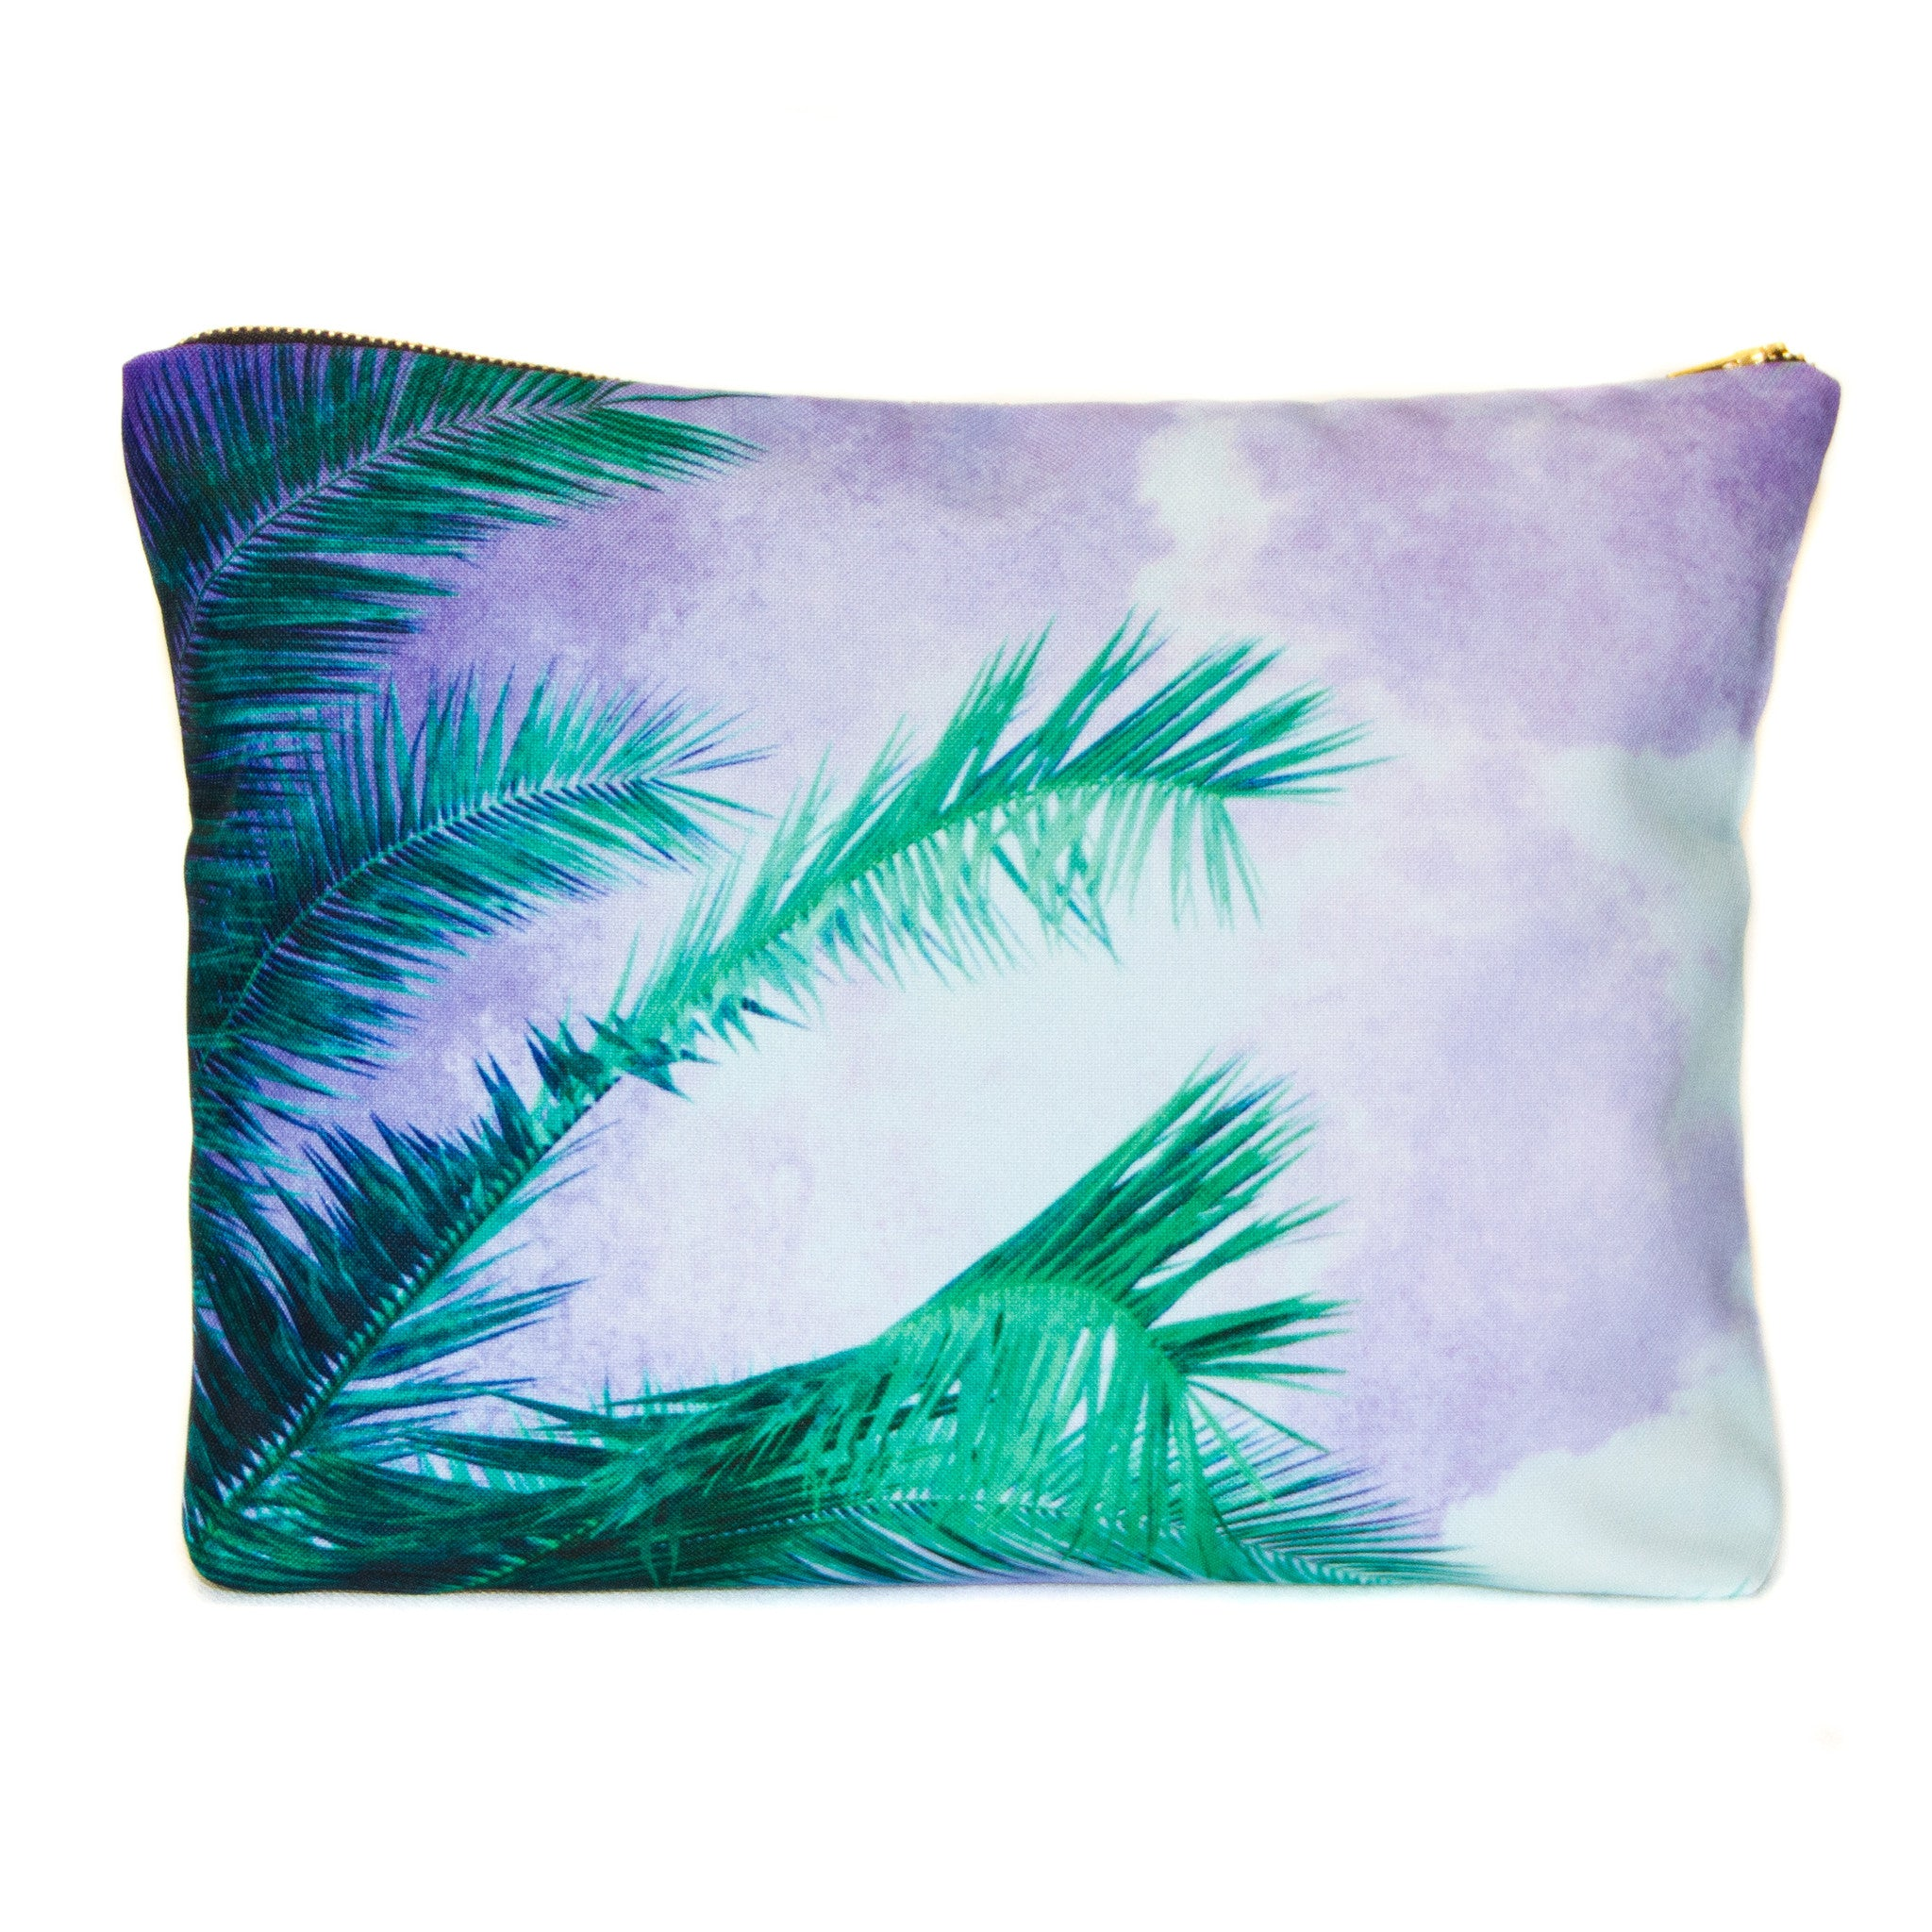 NEW - Large Scene Pouch - Green Palms